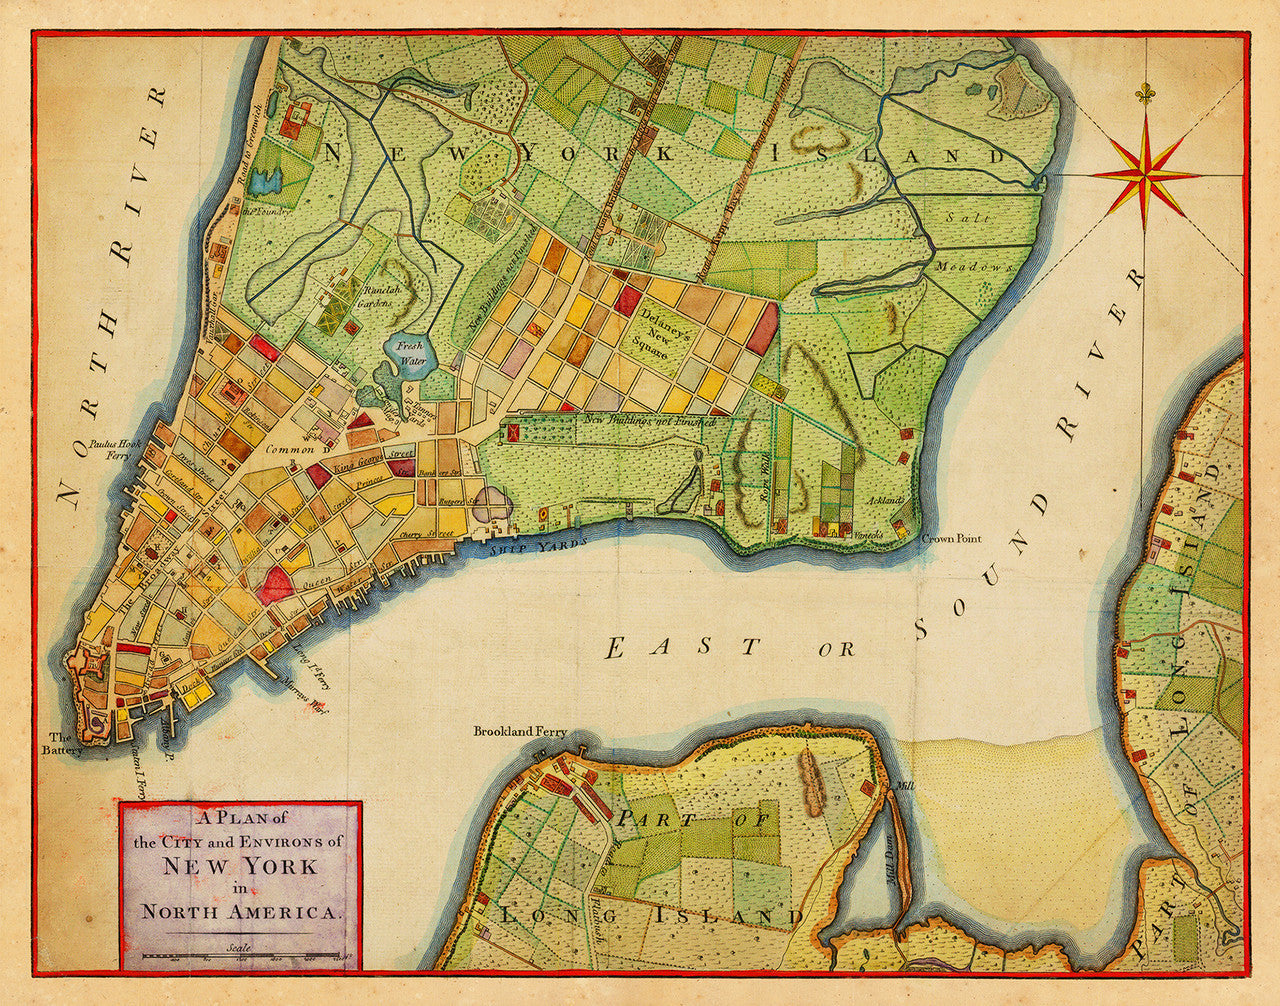 Revolutionary War Map Of New York.City Plan Of New York 1776 Revolutionary Era Map Battlemaps Us